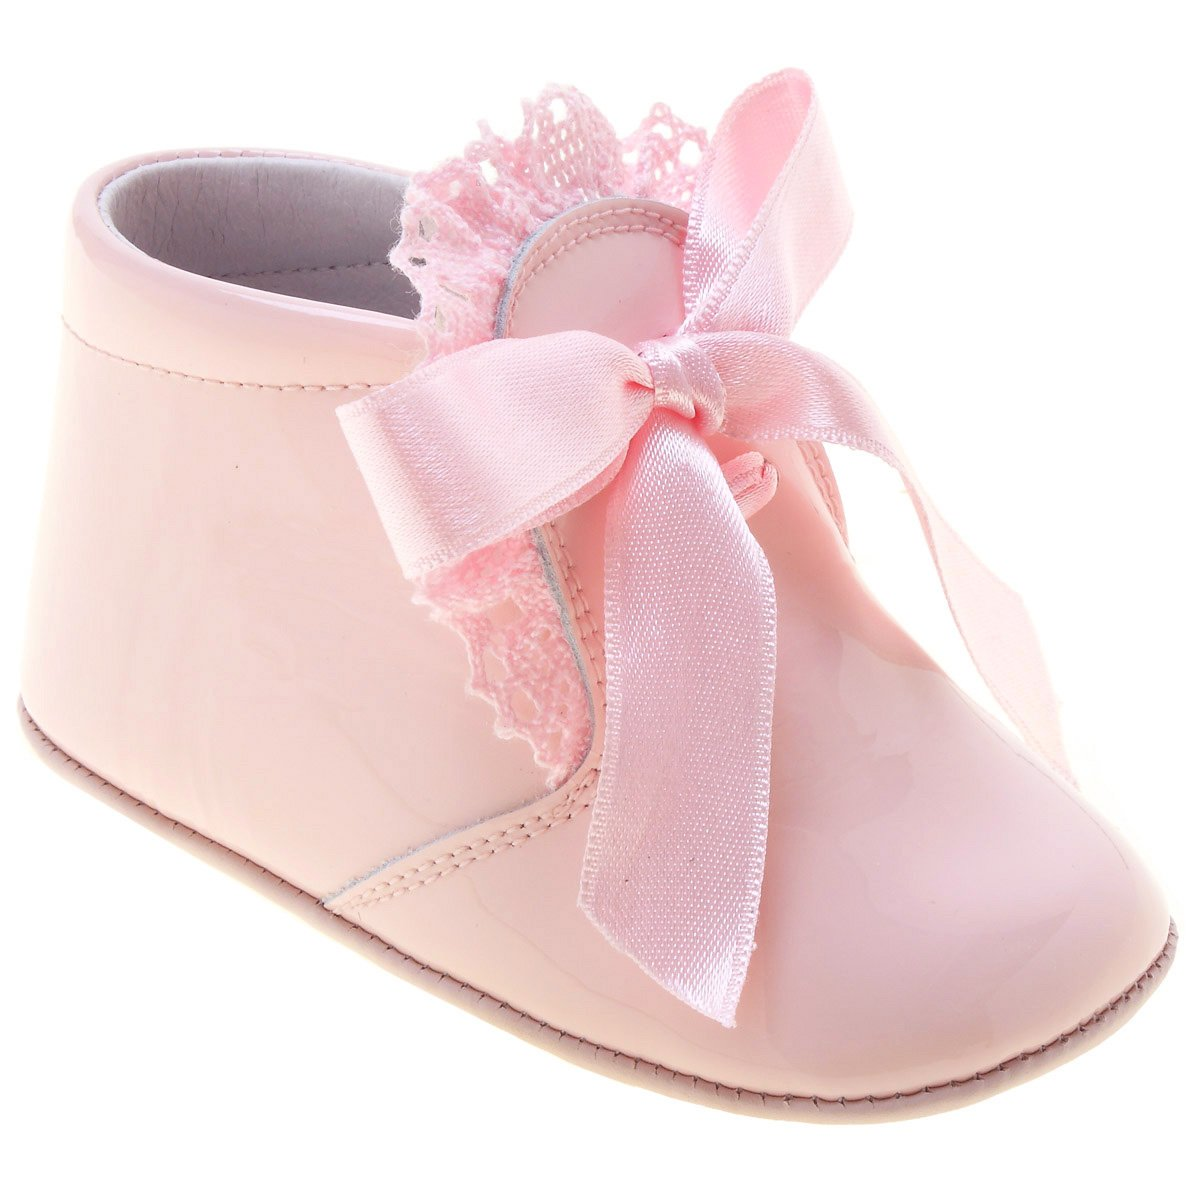 eb020d372470 Baby Girls Pink Pram Boots With Frilly Trim And Ribbon Lace. Double tap to  zoom